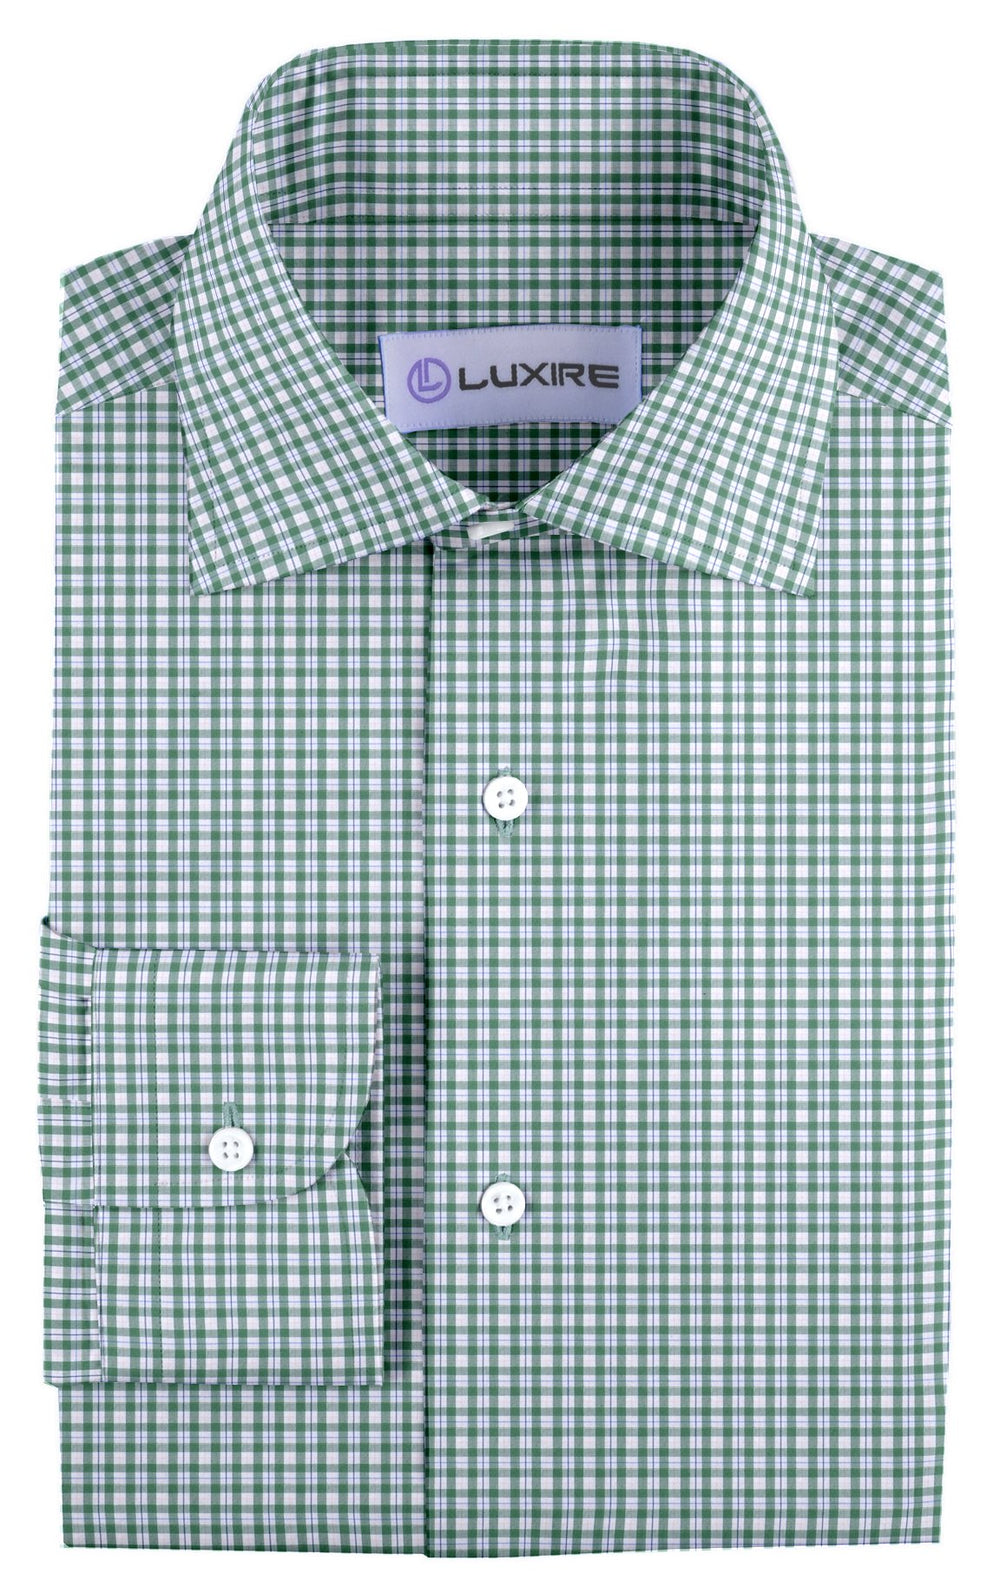 Classic Green Tattersall Checks On White (4208362180)